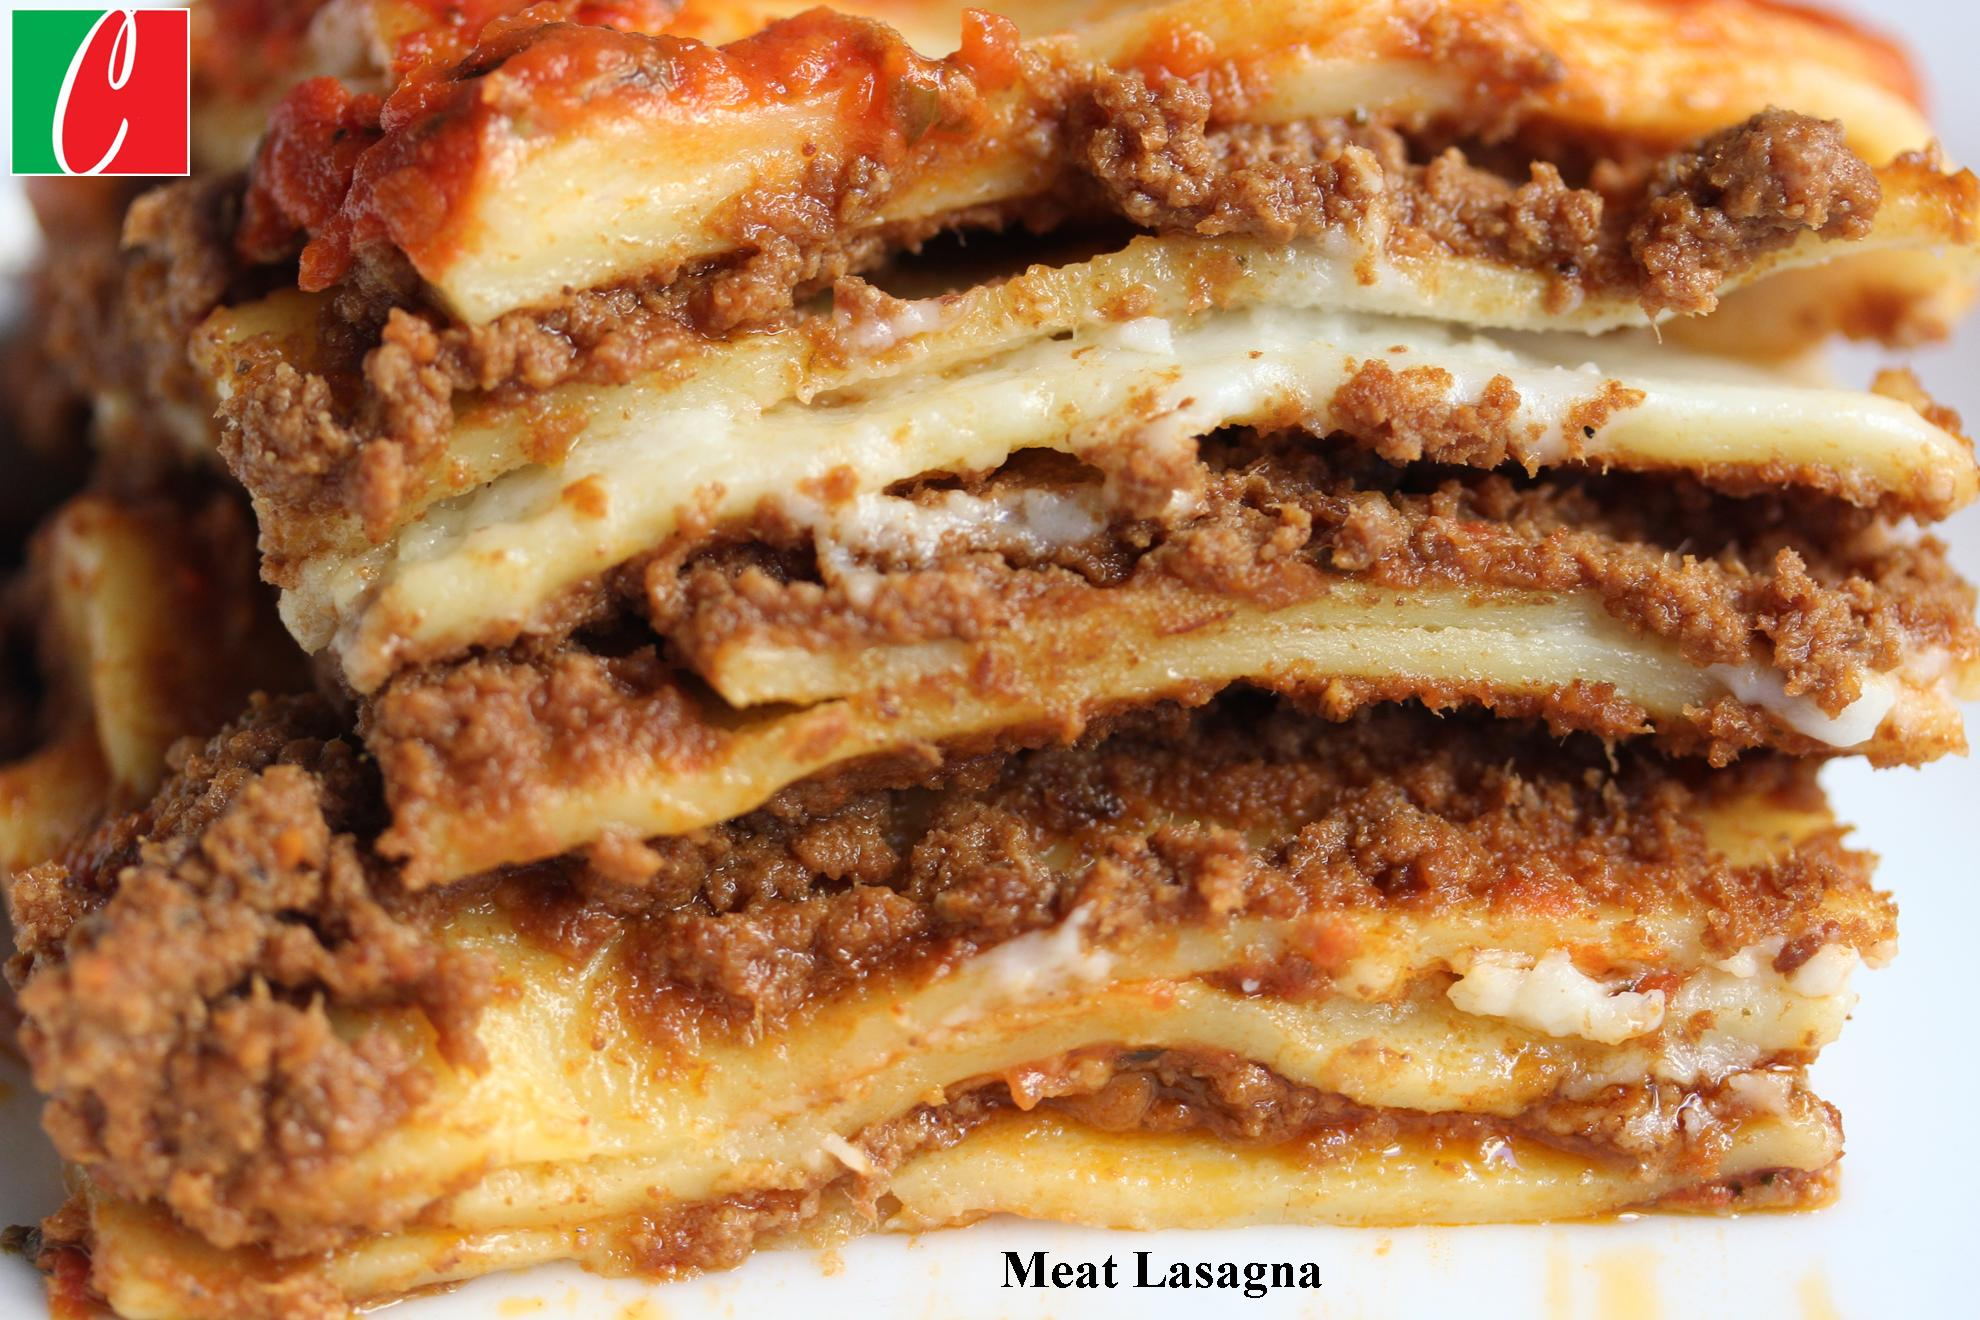 Traditional Meat  Lasagna - Full  Pans serve 20 people